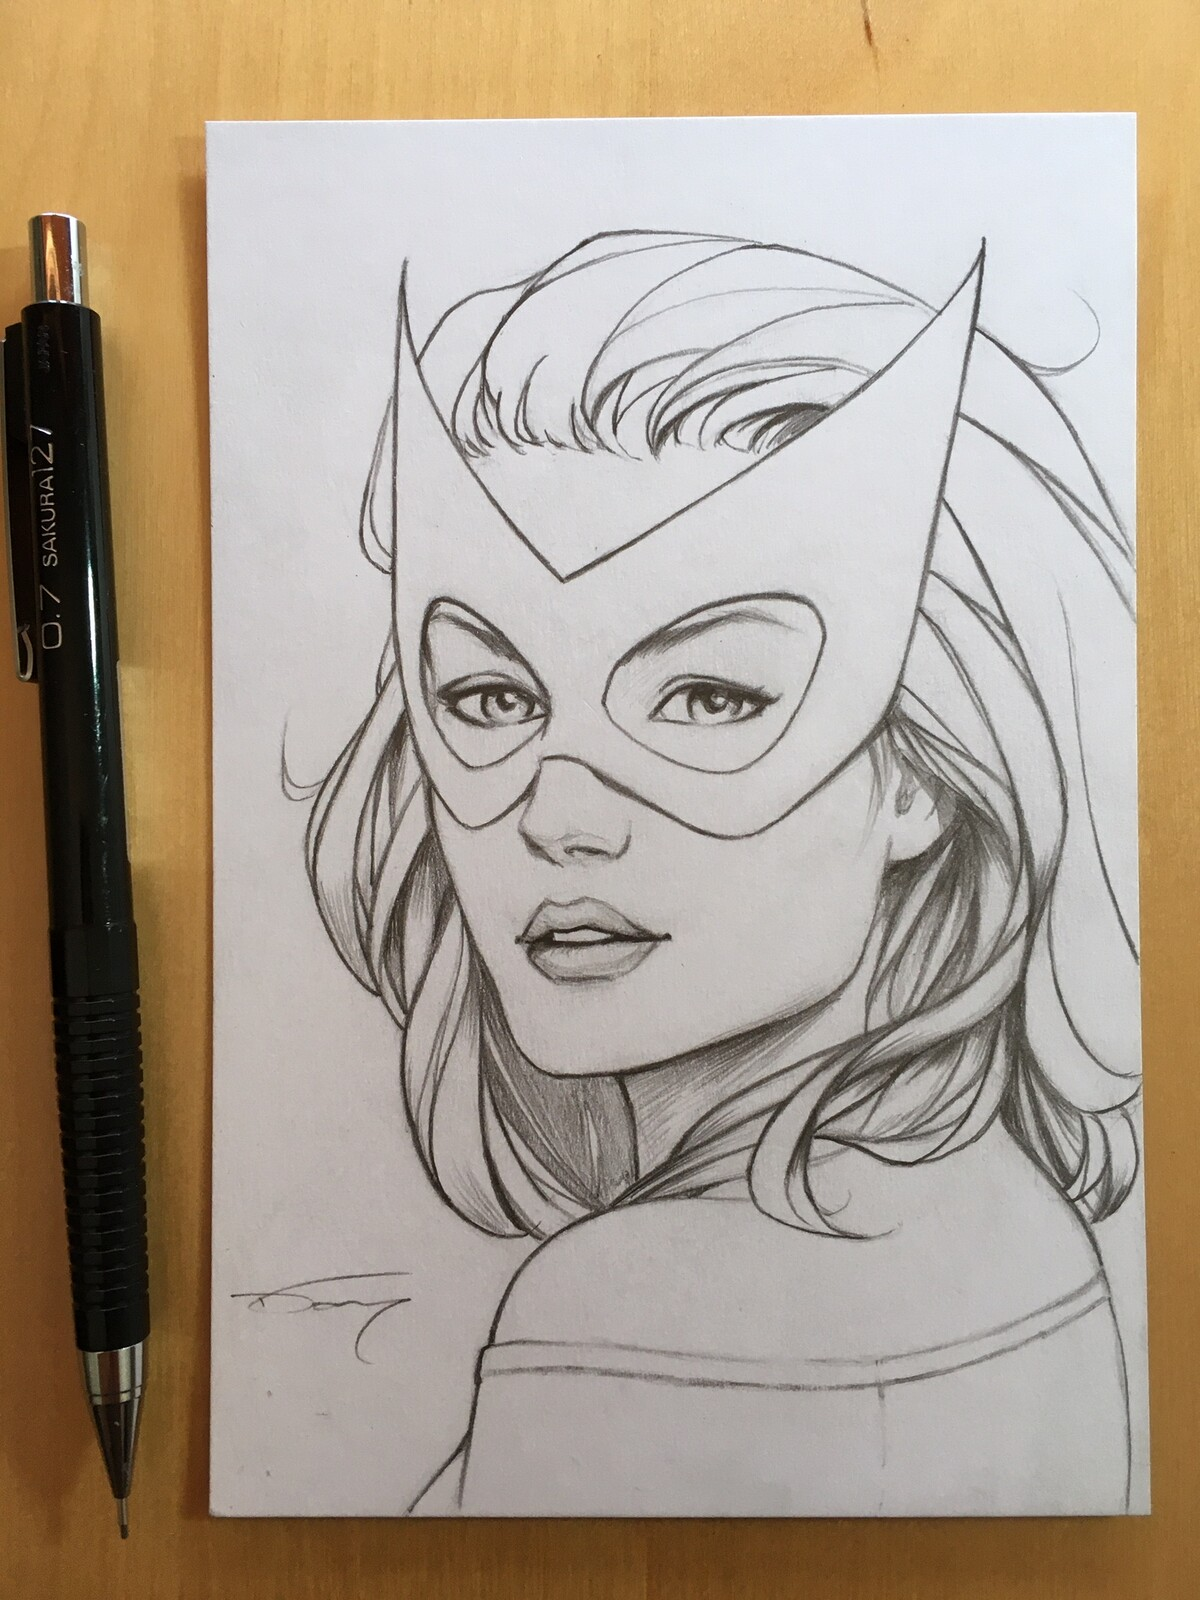 Marvel Girl from the X-Men. Drawn in pencil on 100 lbs white card stock 4 x 6 inch  If you're interested in a commission like this one, please visit my shop for more details! https://donnydtran.bigcartel.com/